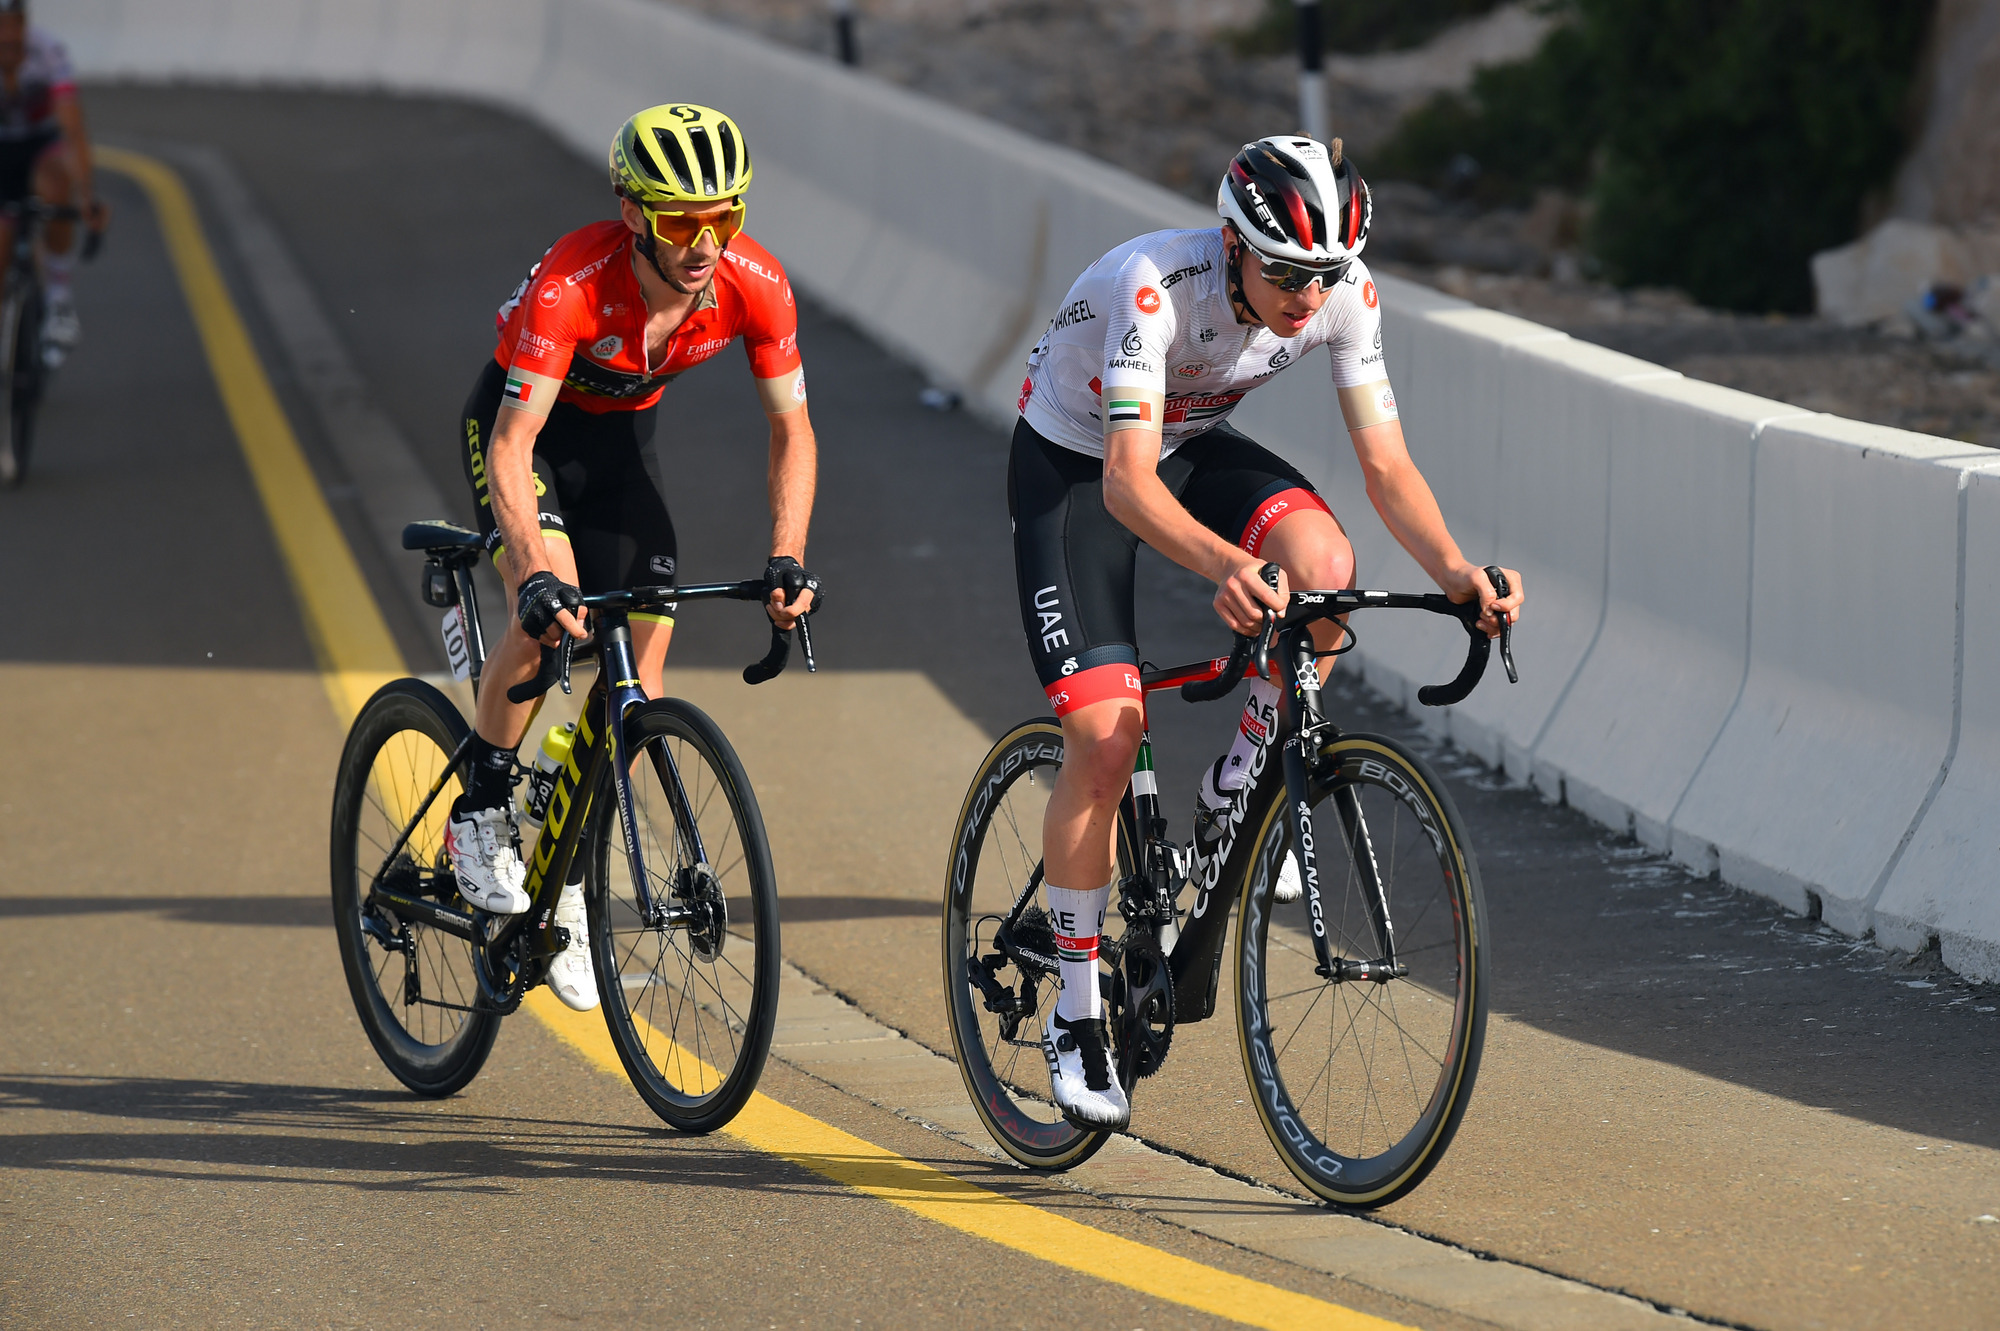 2021 UAE Tour will feature all WorldTour teams and Alpecin-Fenix